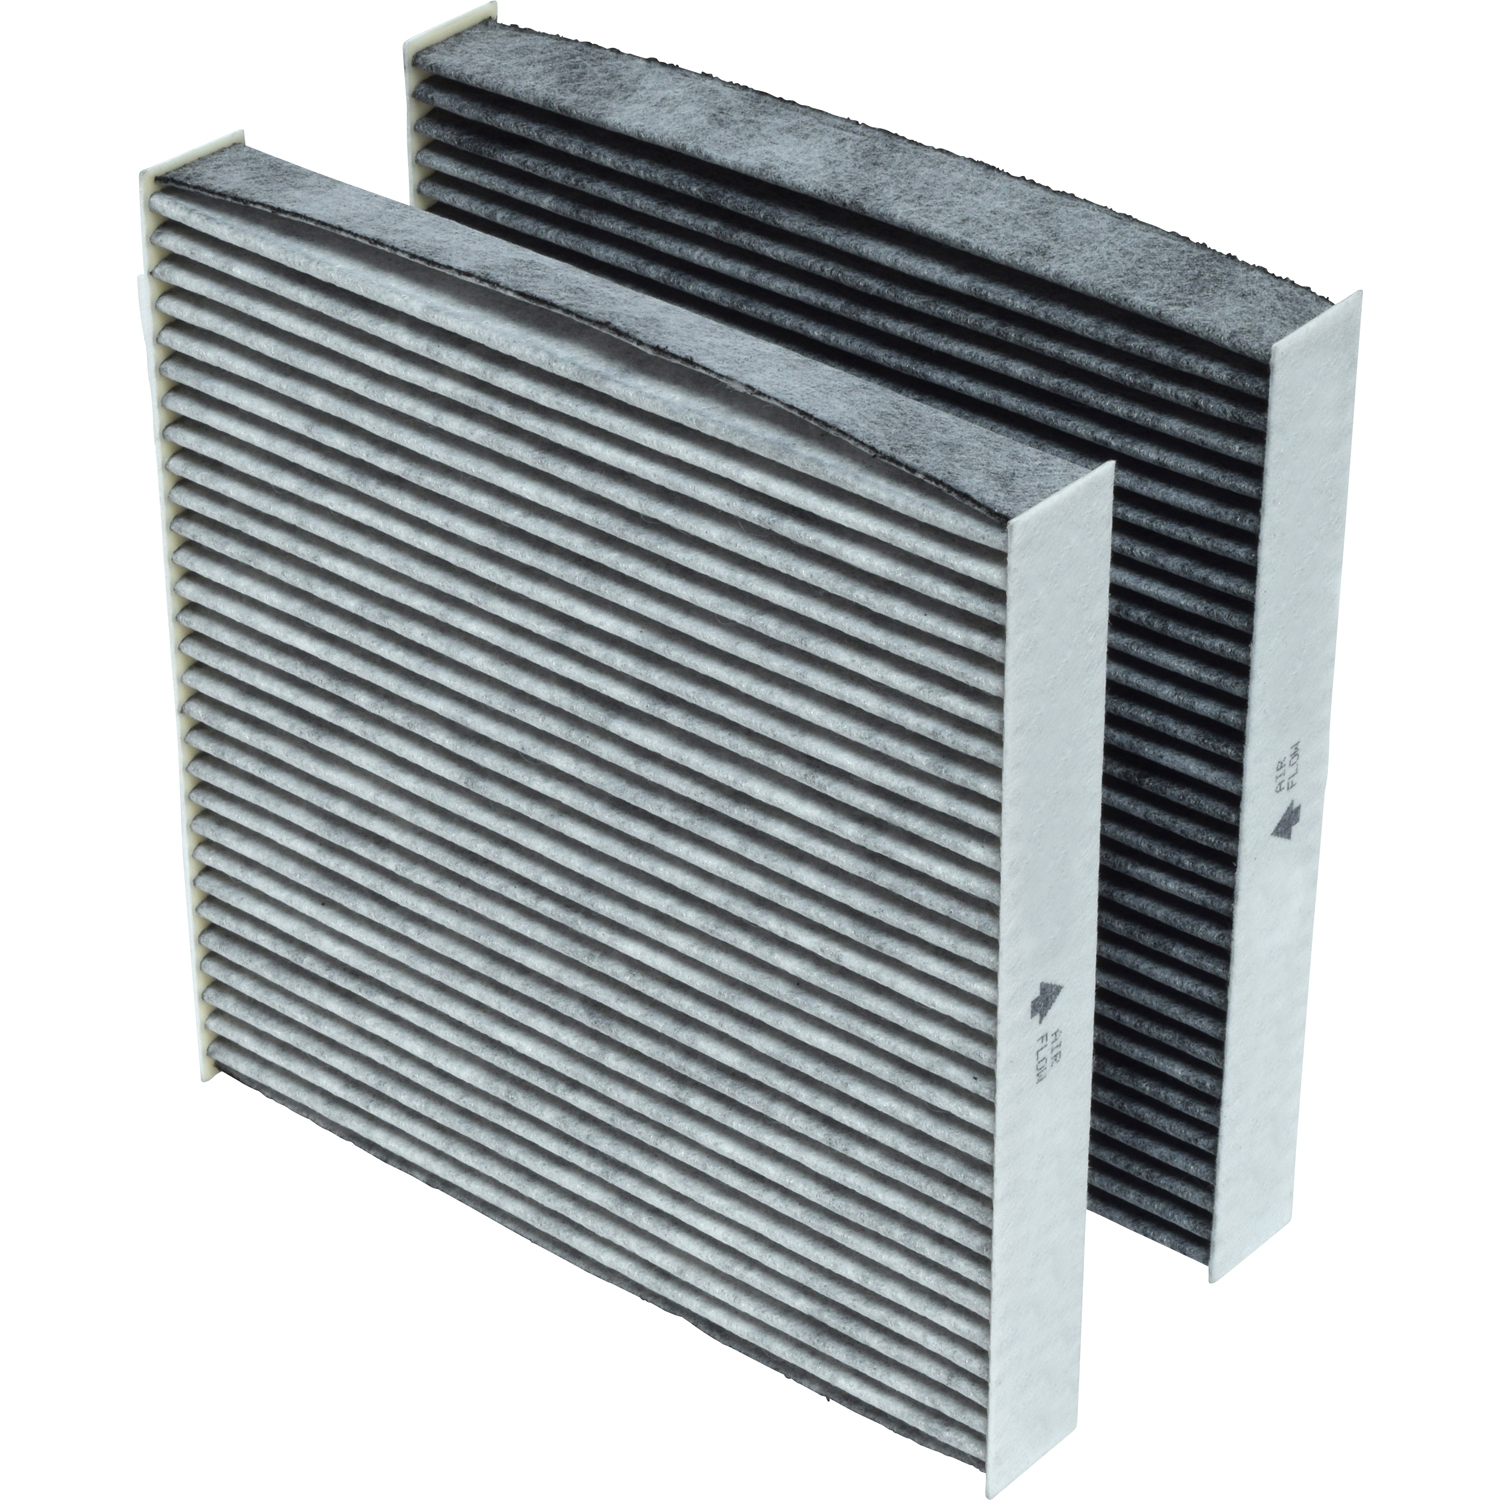 Charcoal Cabin Air Filter FI 1294C